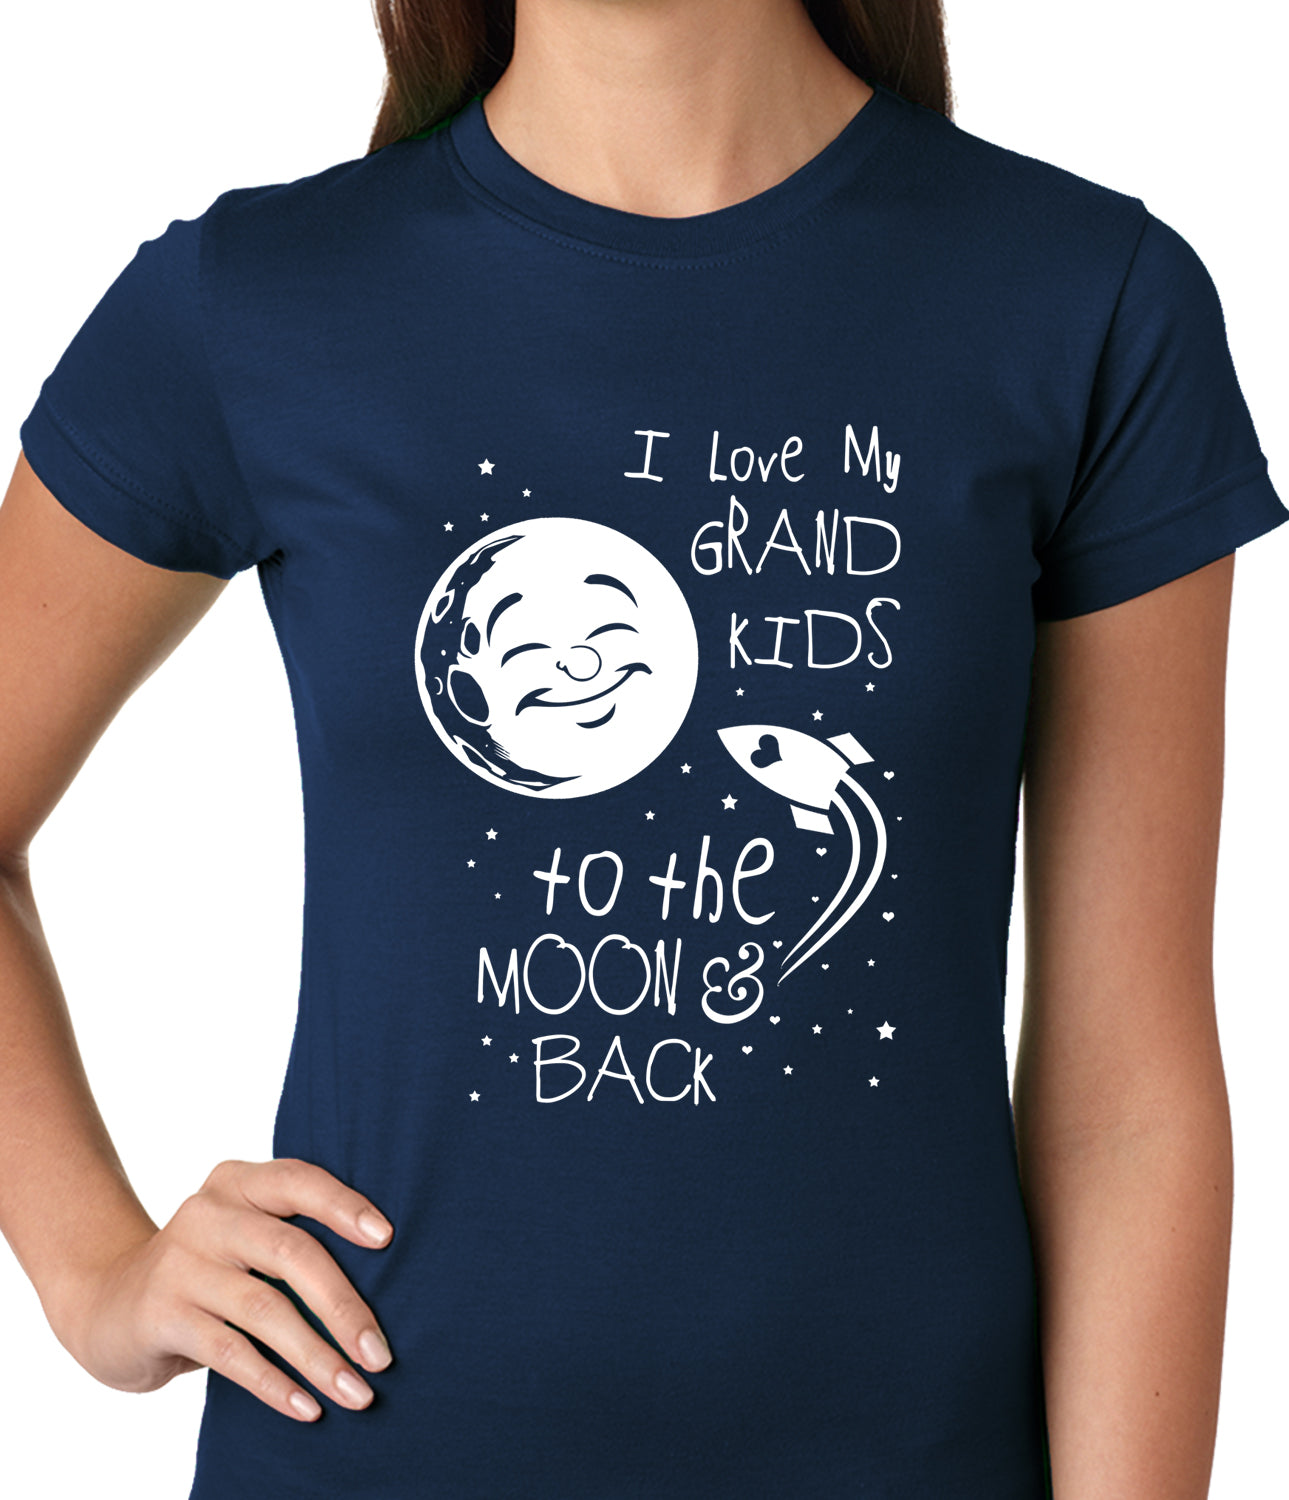 I Love My GrandKids to the Moon and Back Ladies T-shirt